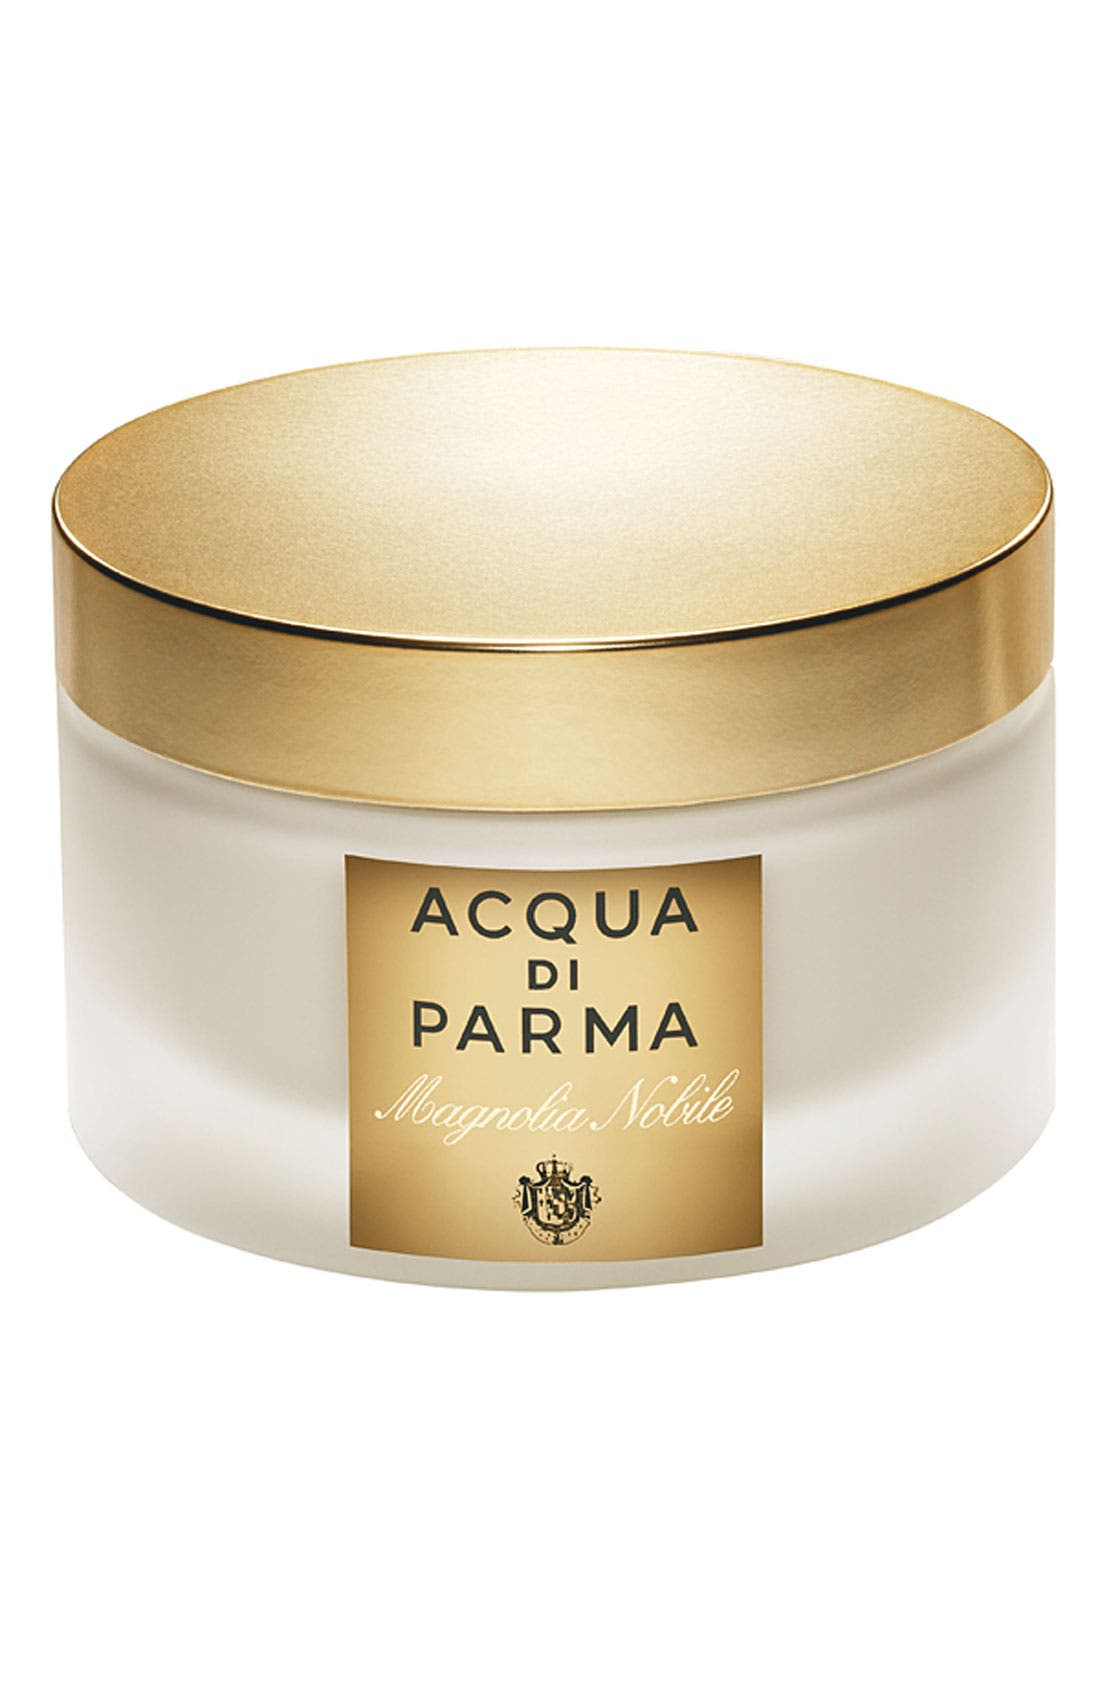 Acqua di Parma 'Magnolia Nobile' Body Cream